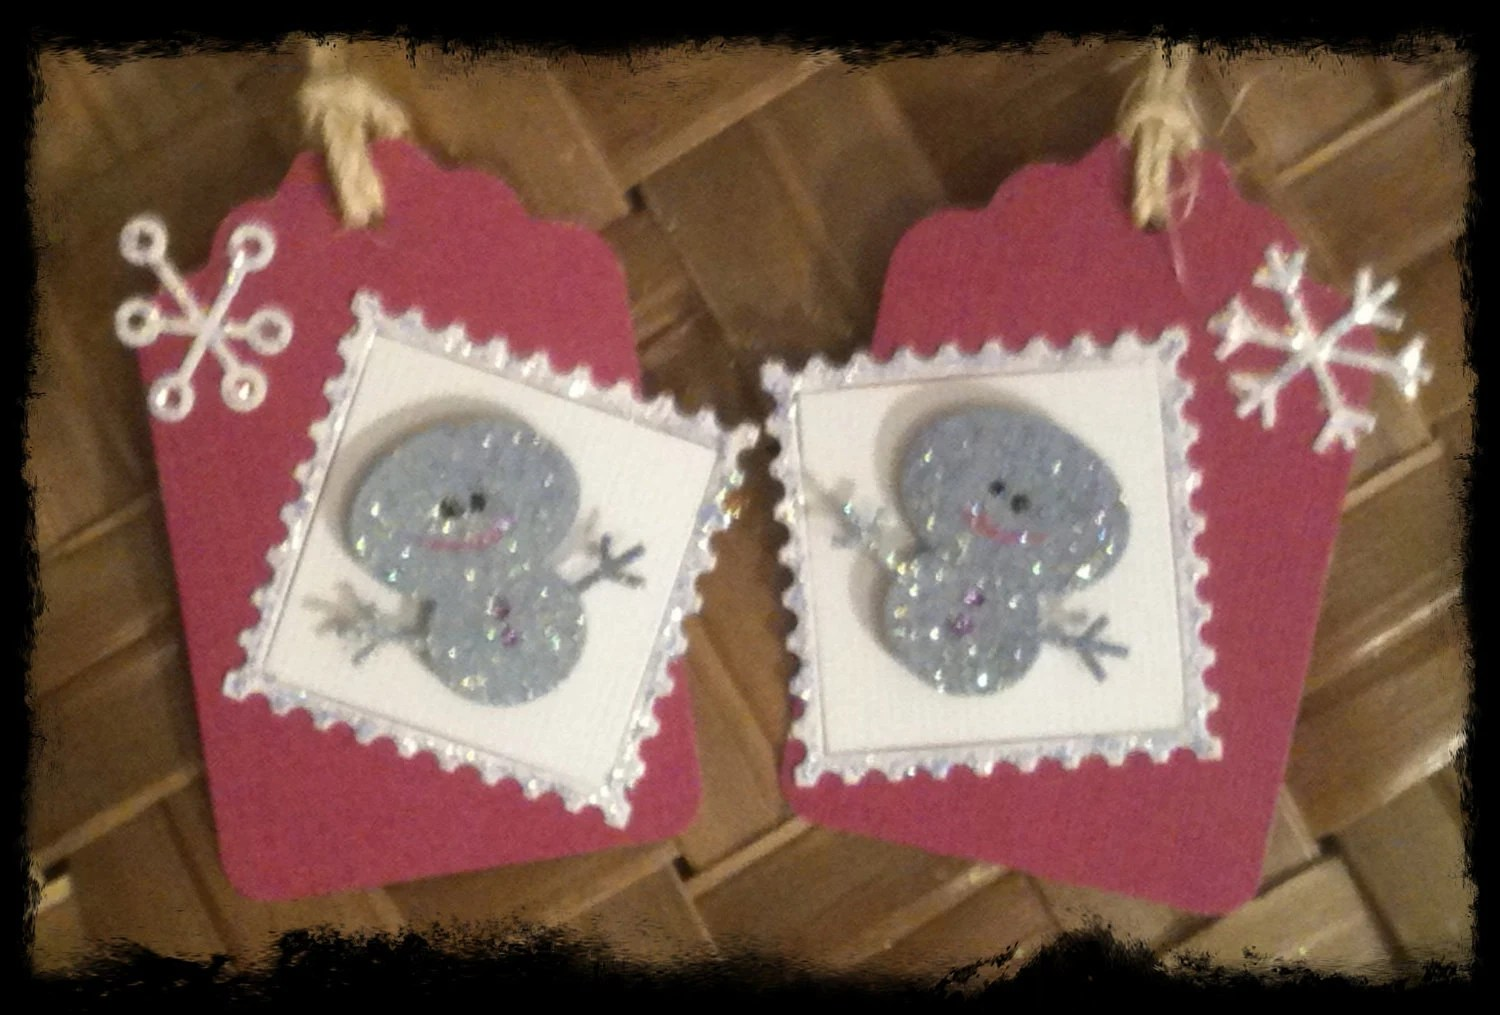 FOUR Snowman Snowflake Plum Sky Blue Snow White Glittery Postage Stamp Handmade Holiday Gift Tags